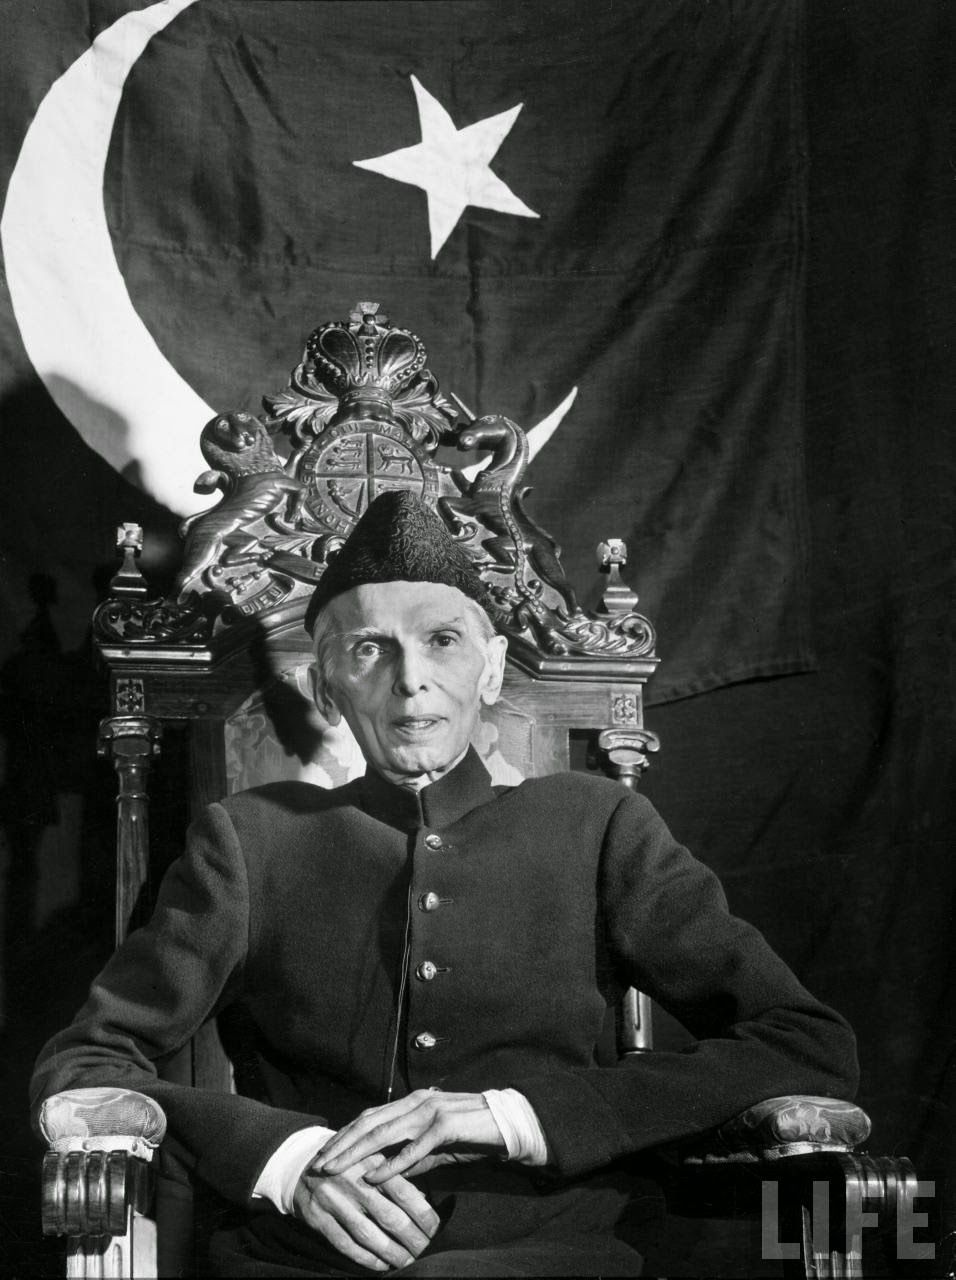 first governor general of muhammad ali jinnah sitting in first governor general of muhammad ali jinnah sitting in front of i flag